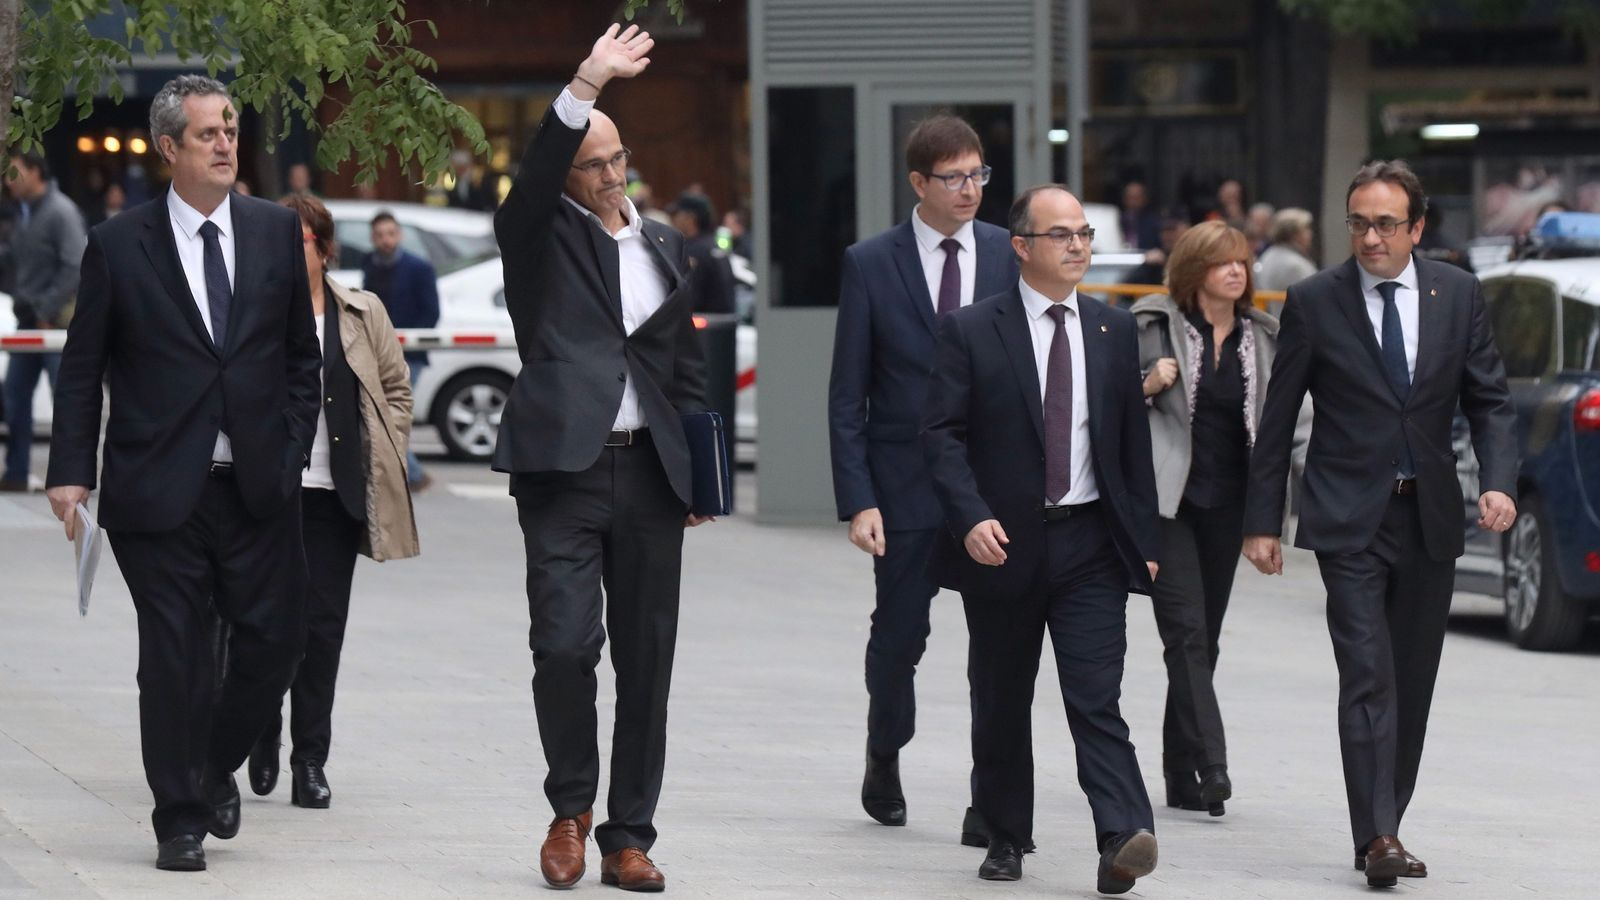 Judge Lamela imprisoned Catalan ministers despite complying with Article 155 / KIKO HUESCA / EFE